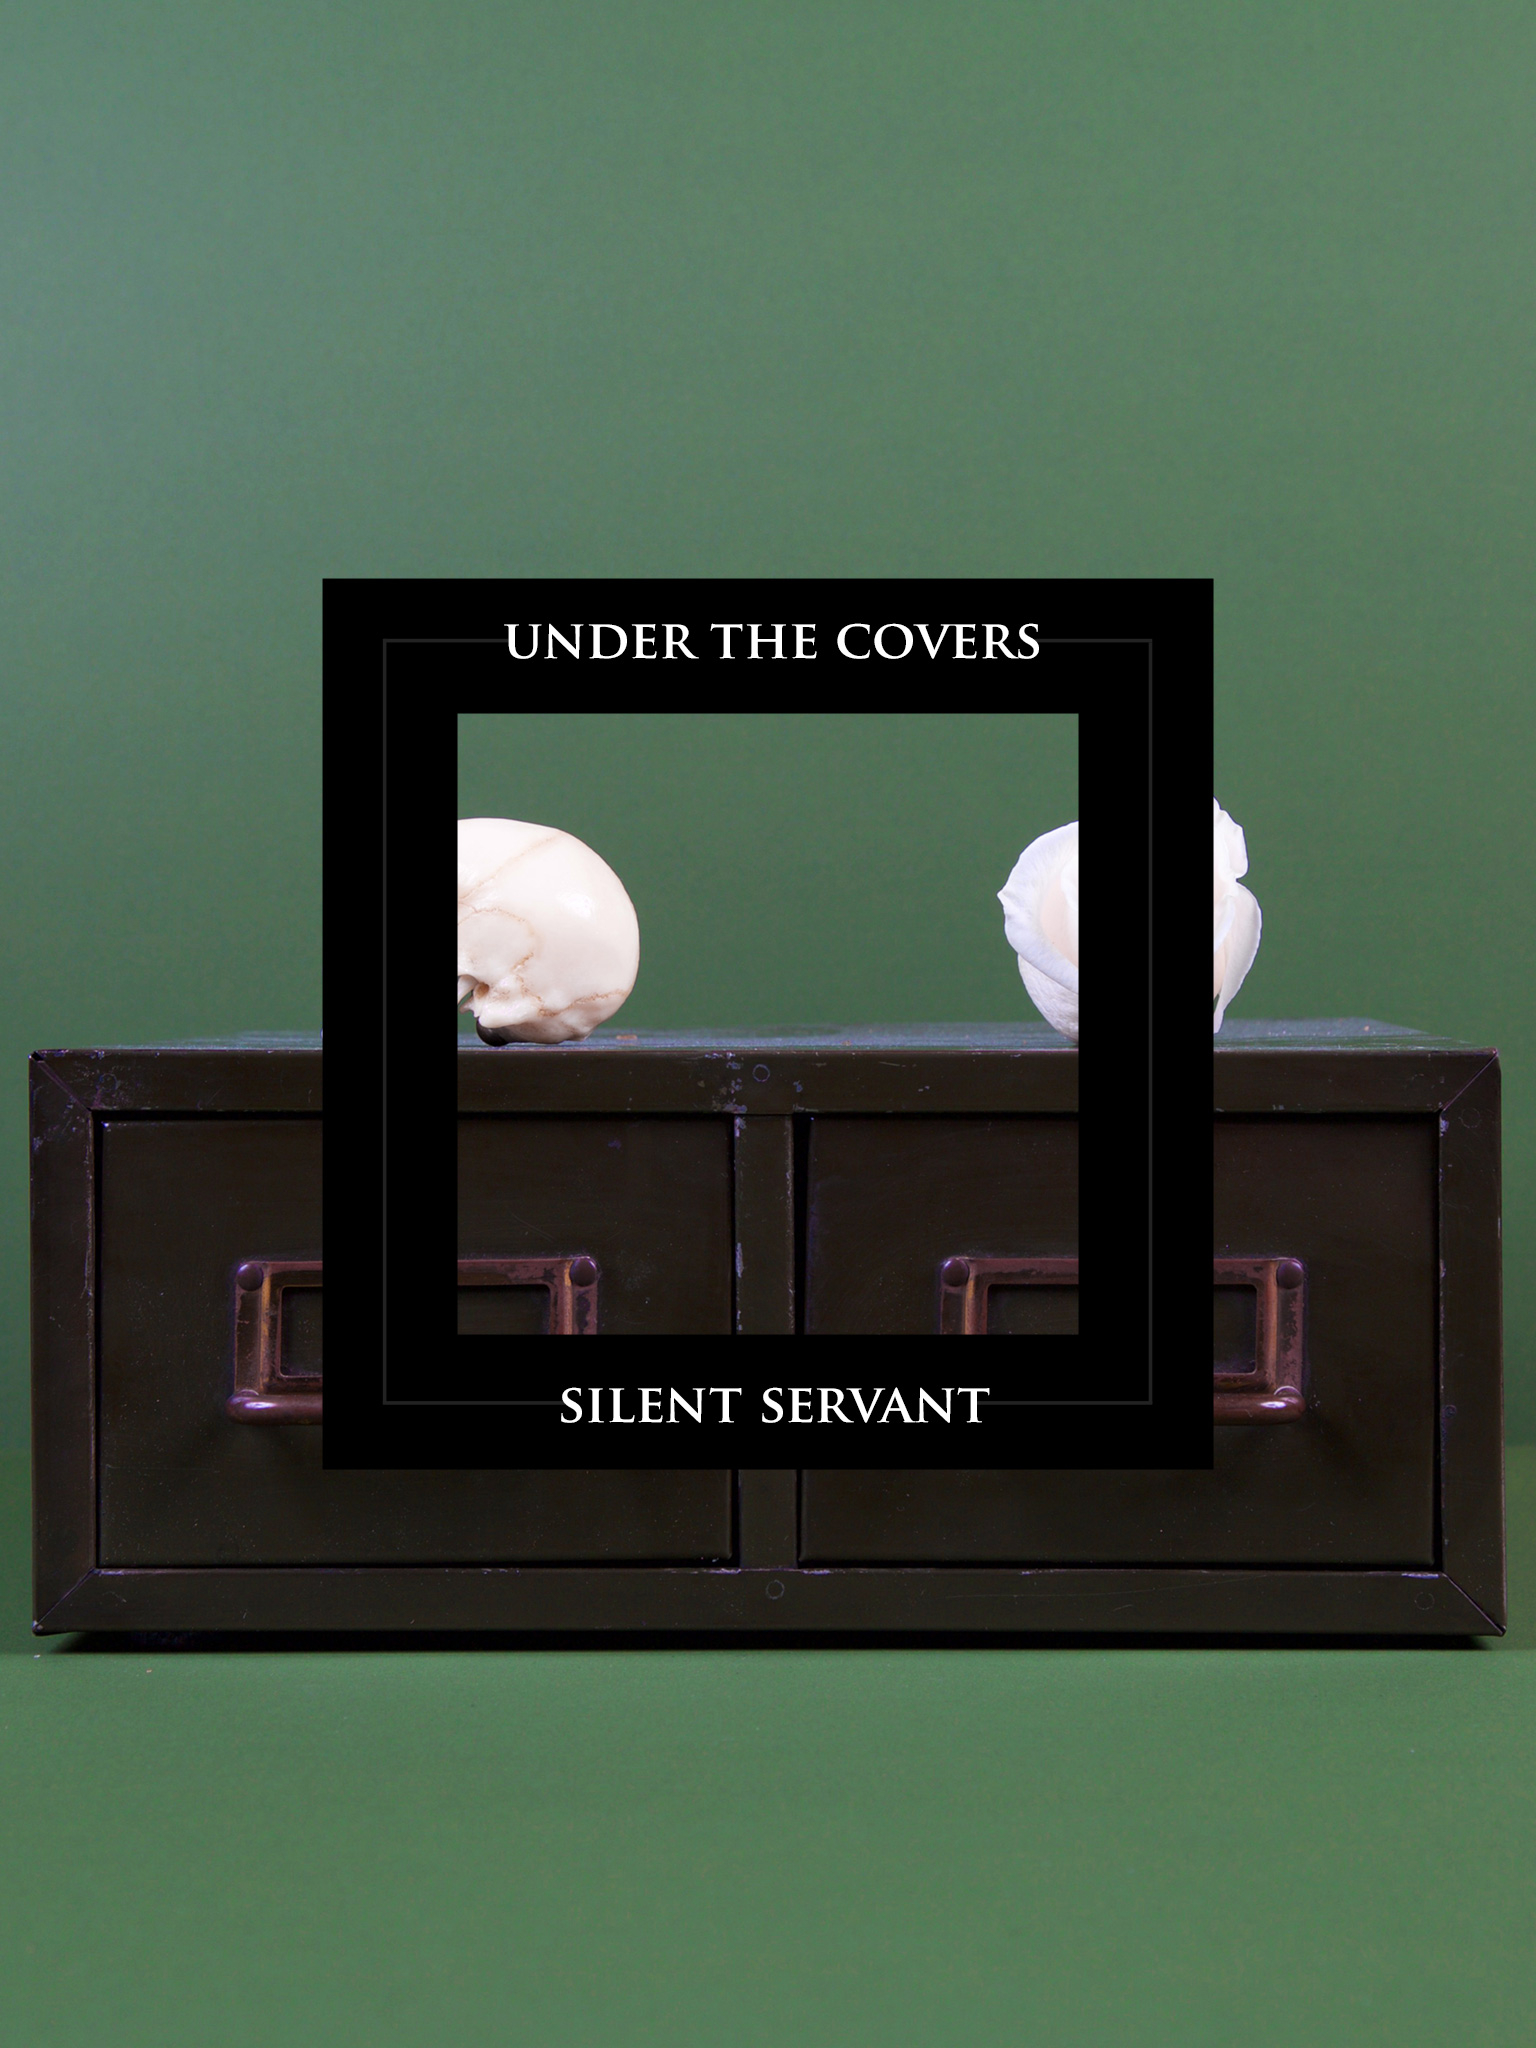 Under the covers: Silent Servant